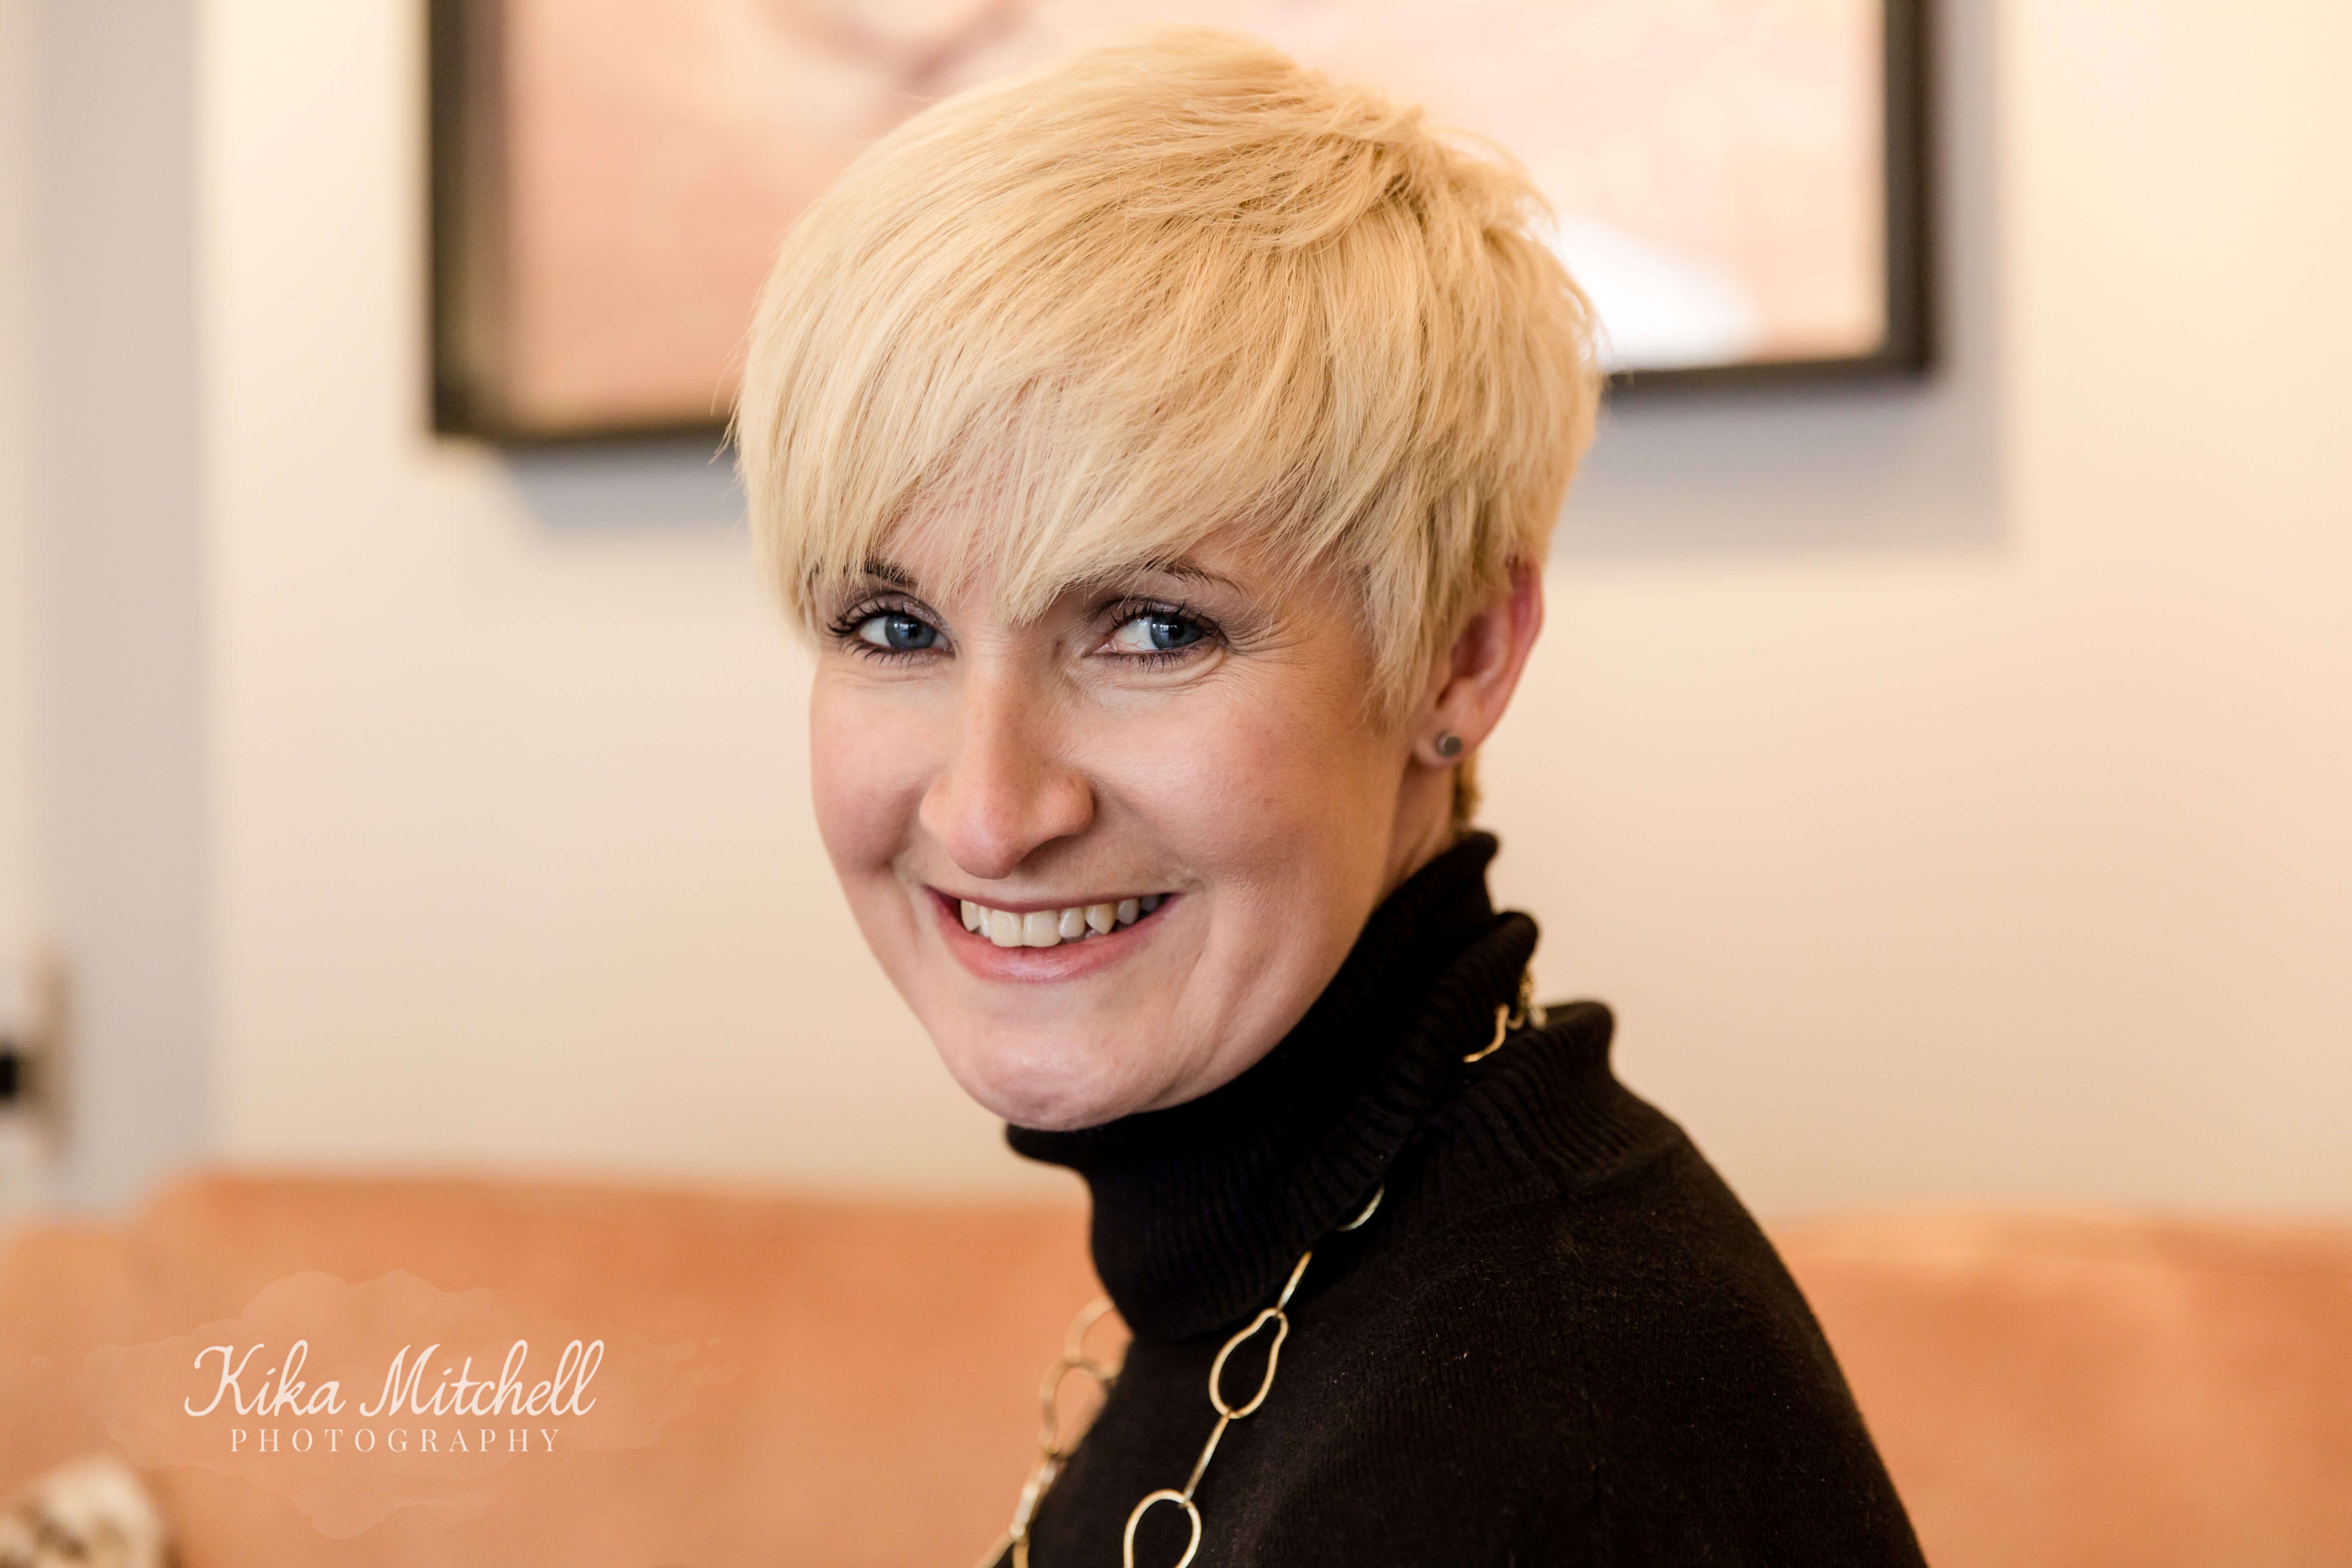 Headshots and business photography by Kika Mitchell Chelmsford Photographer